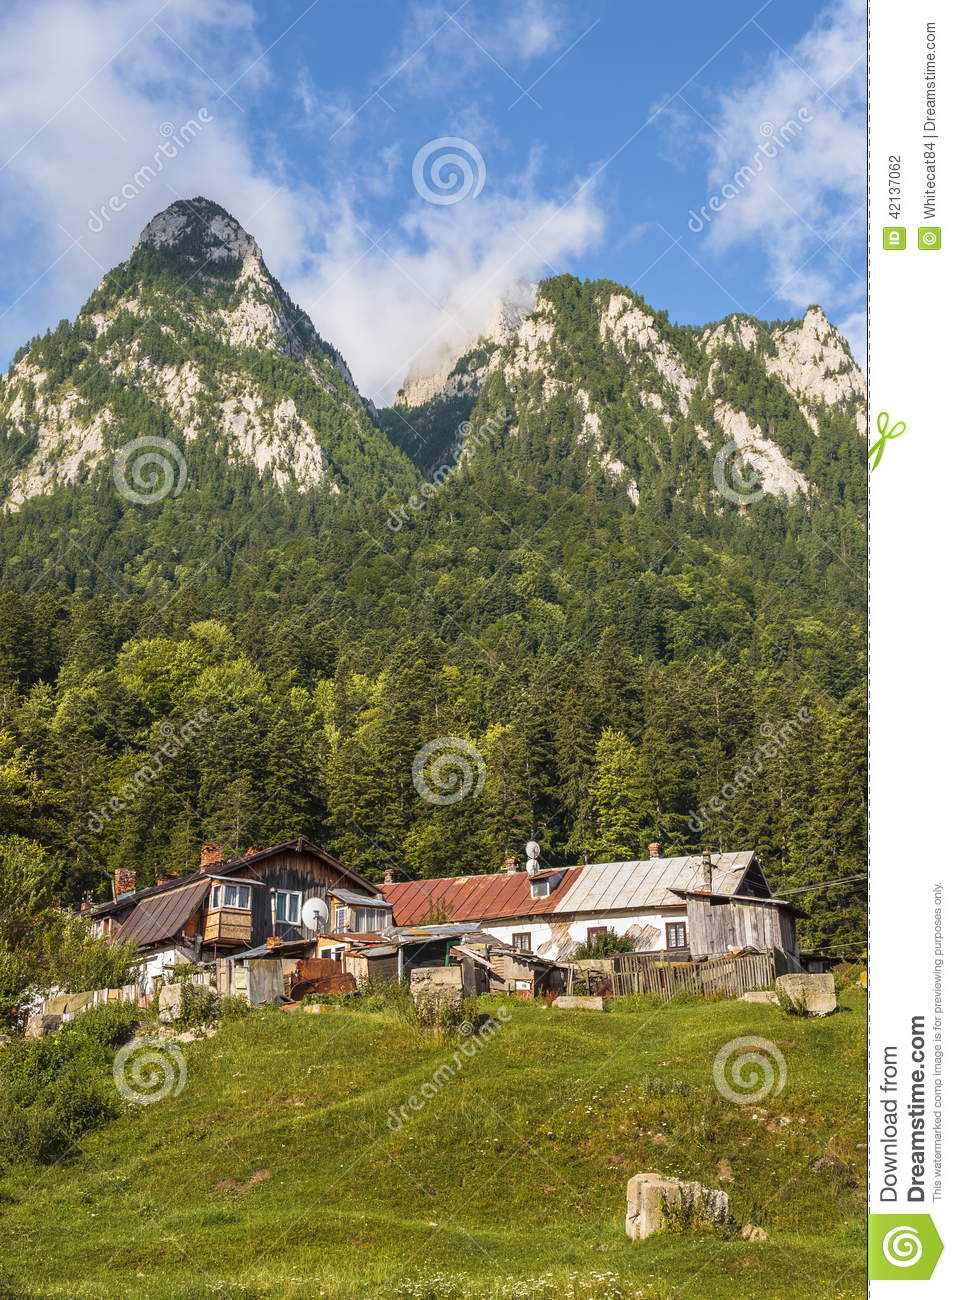 Mountain Landscape With Old Houses Stock Photo Image